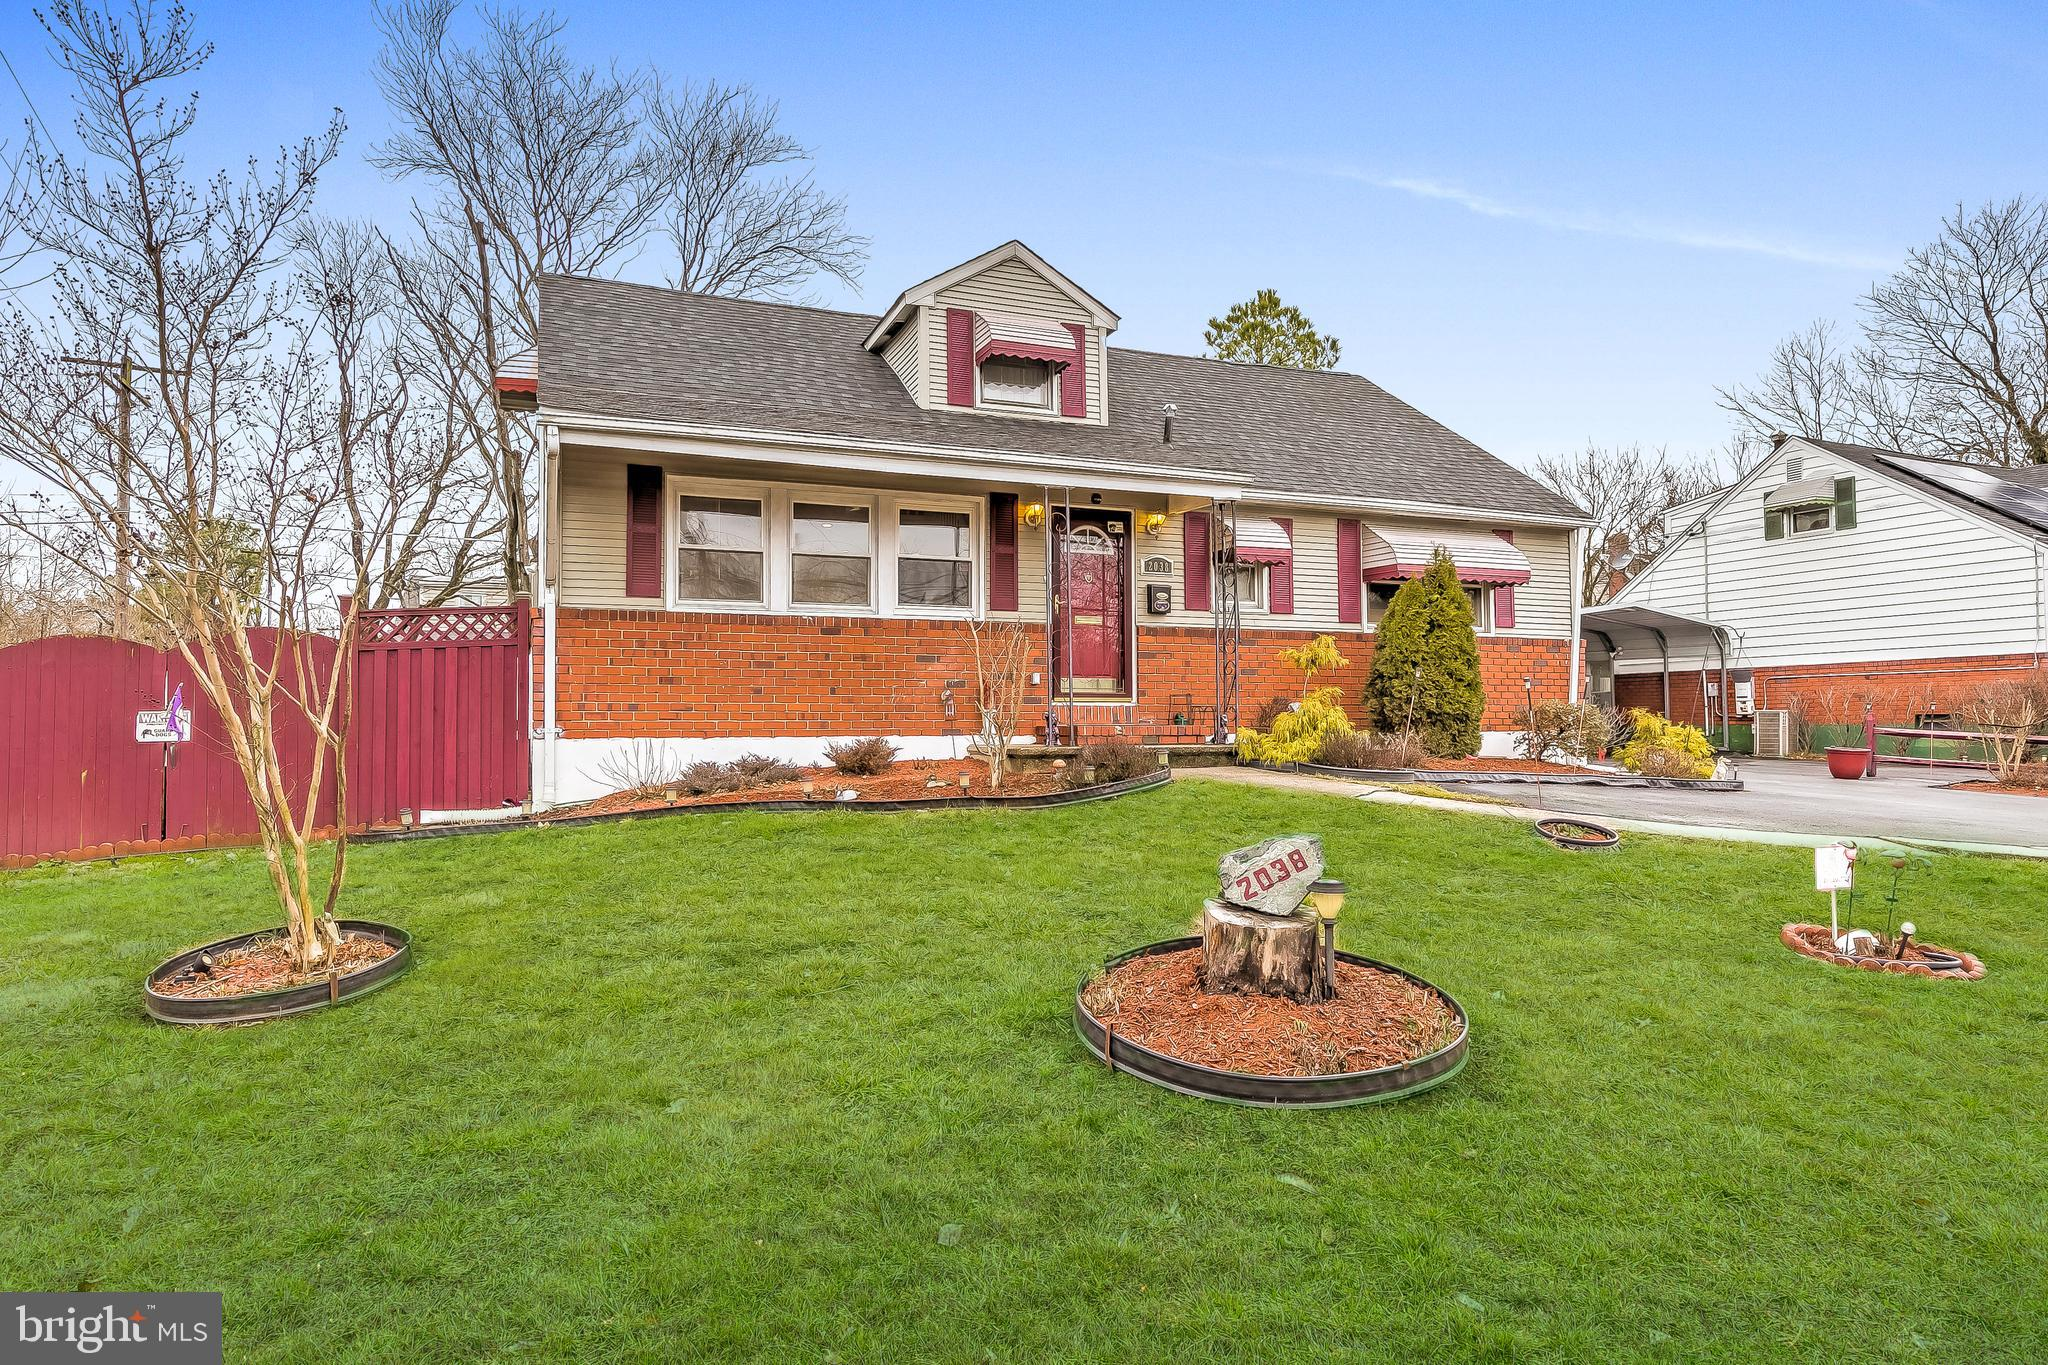 2038 N ROLLING ROAD, BALTIMORE, MD 21244